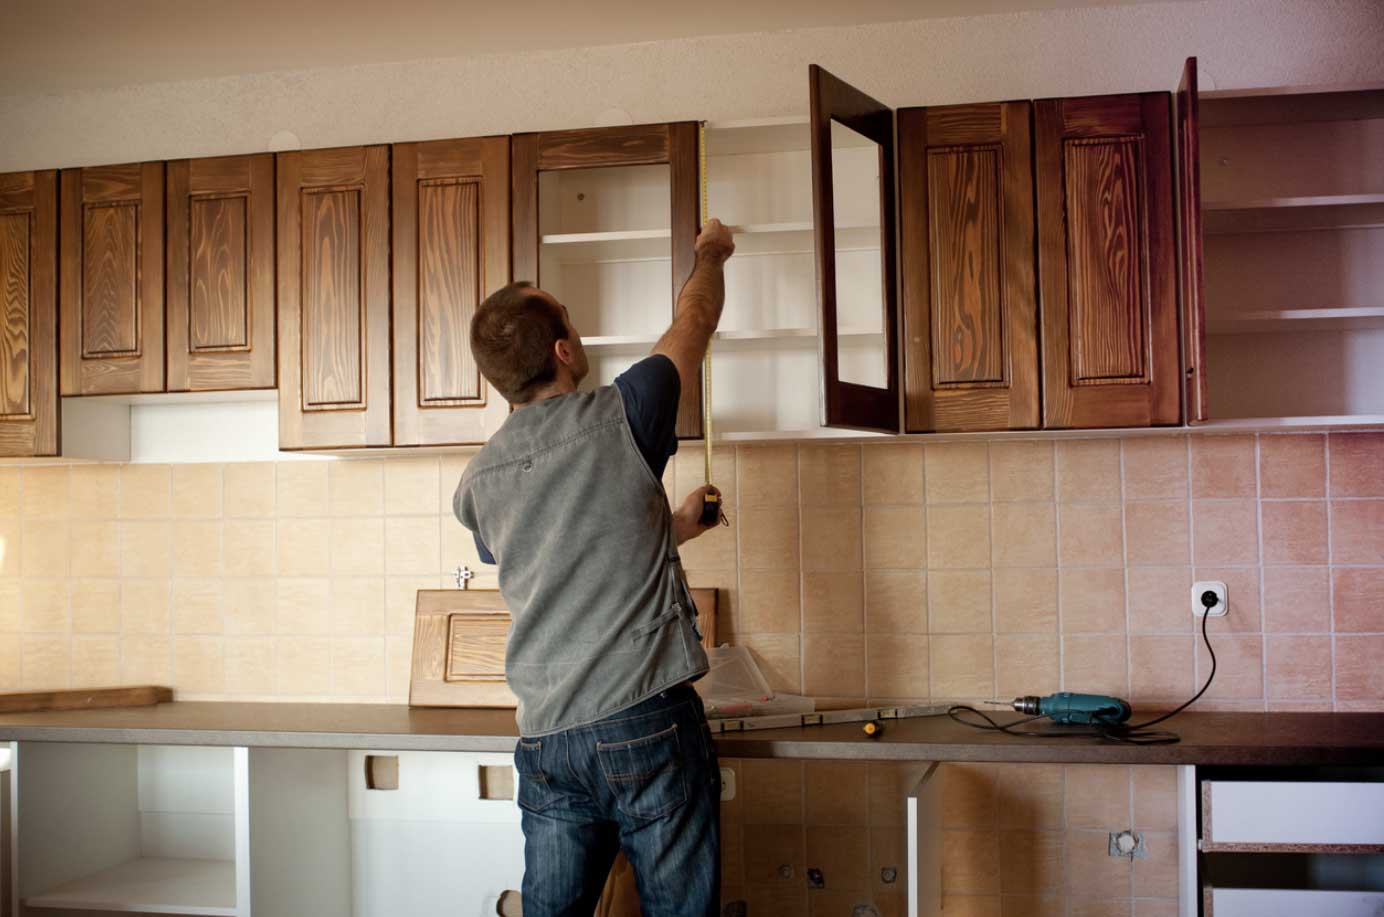 How Can You Tell the Difference Between Laminate and Wood Cabinet Doors?